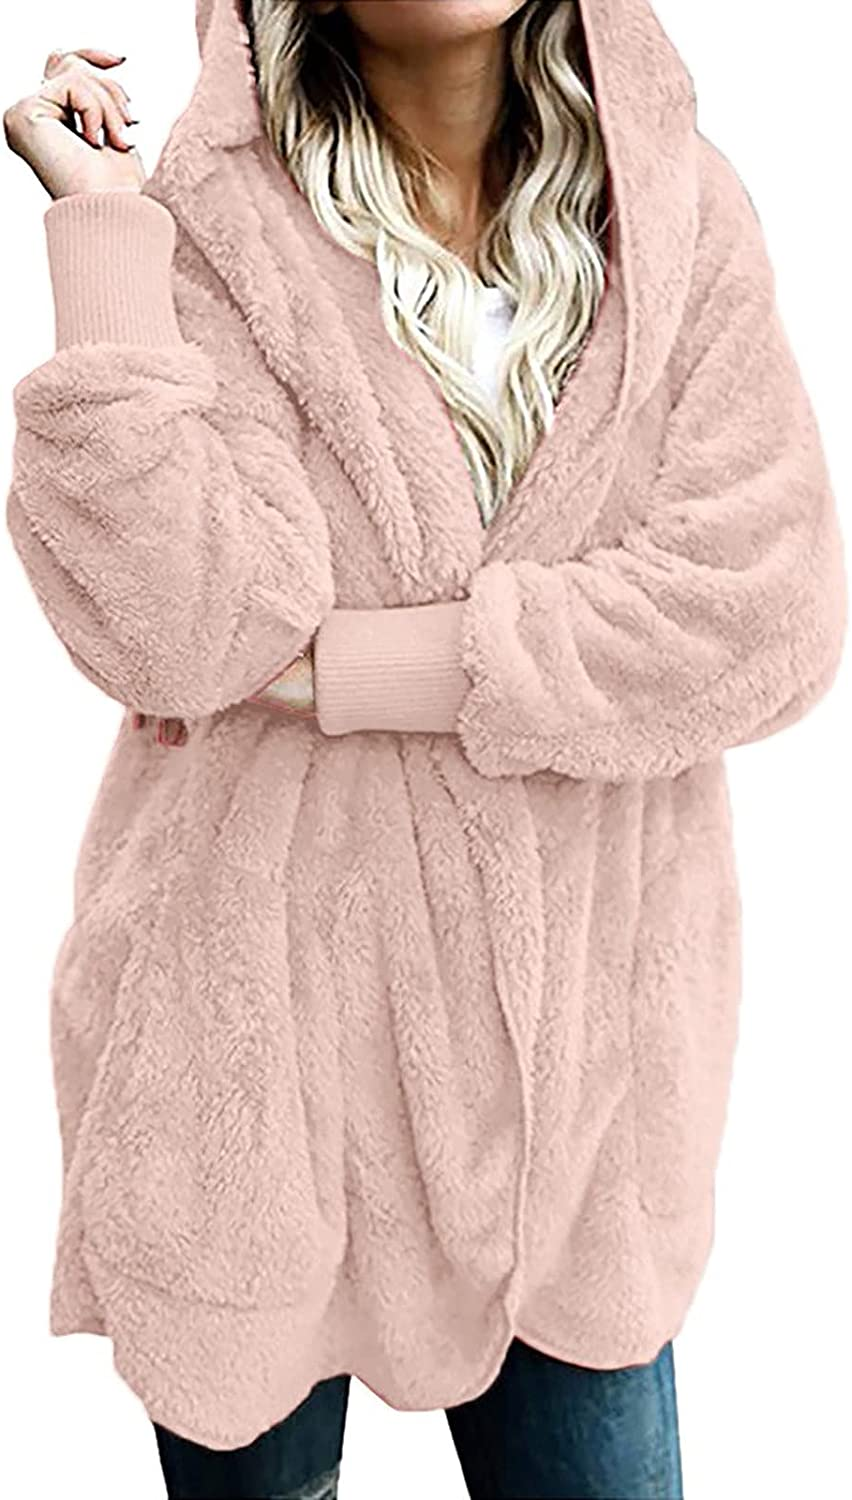 Womens Winter Fuzzy Faux Hooded Coat Casual Plus Size Plush Open Front Cardigan Solid Outdoor Jacket Warm Outwear